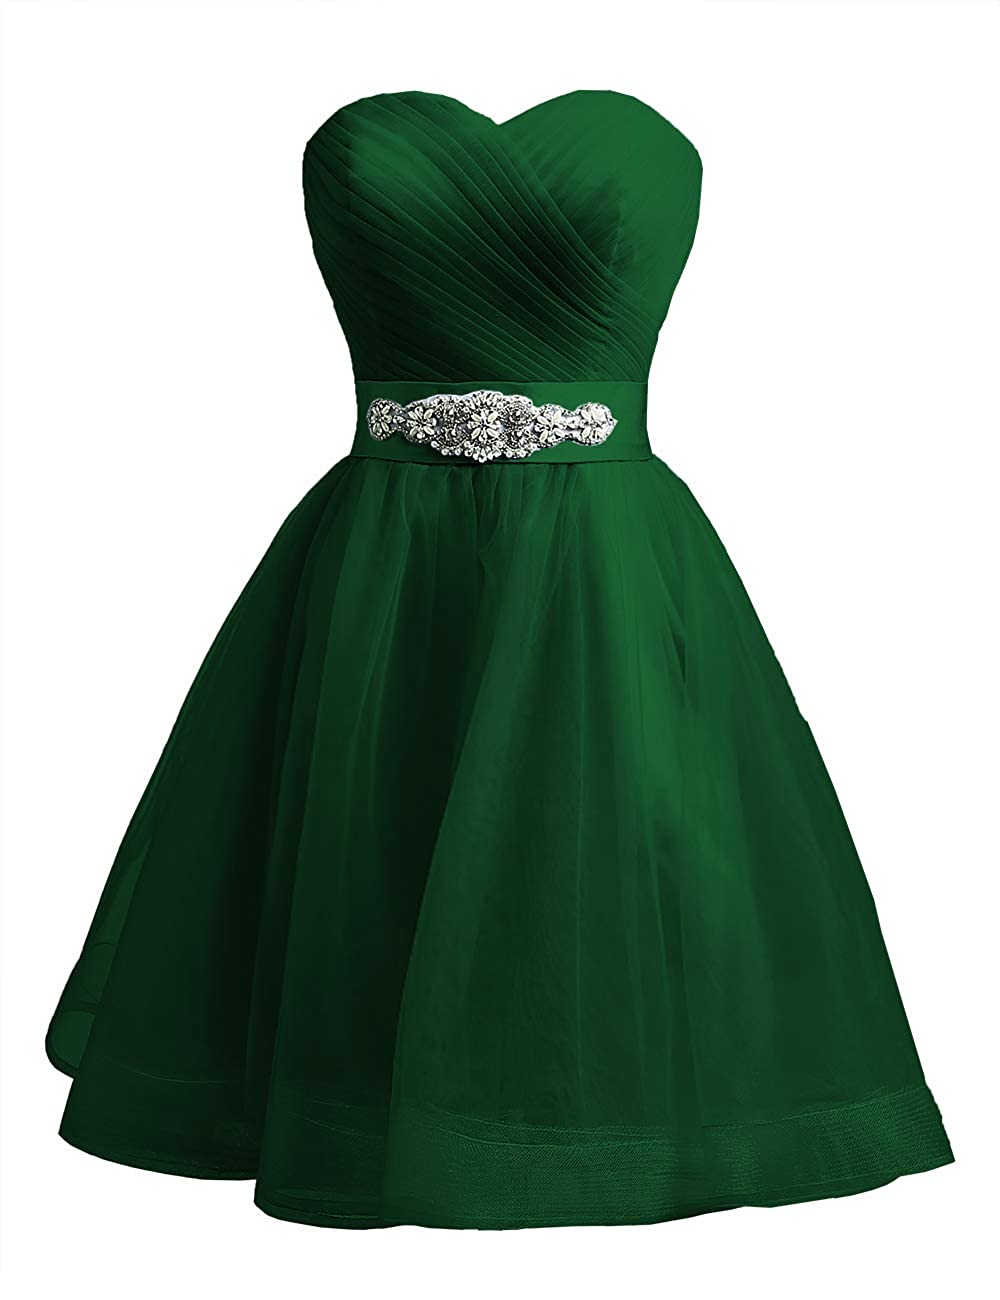 Dark Green Uther Sweetheart Beaded ALine Homecoming Dress Short Cocktail Dress Tulle Porm Gown